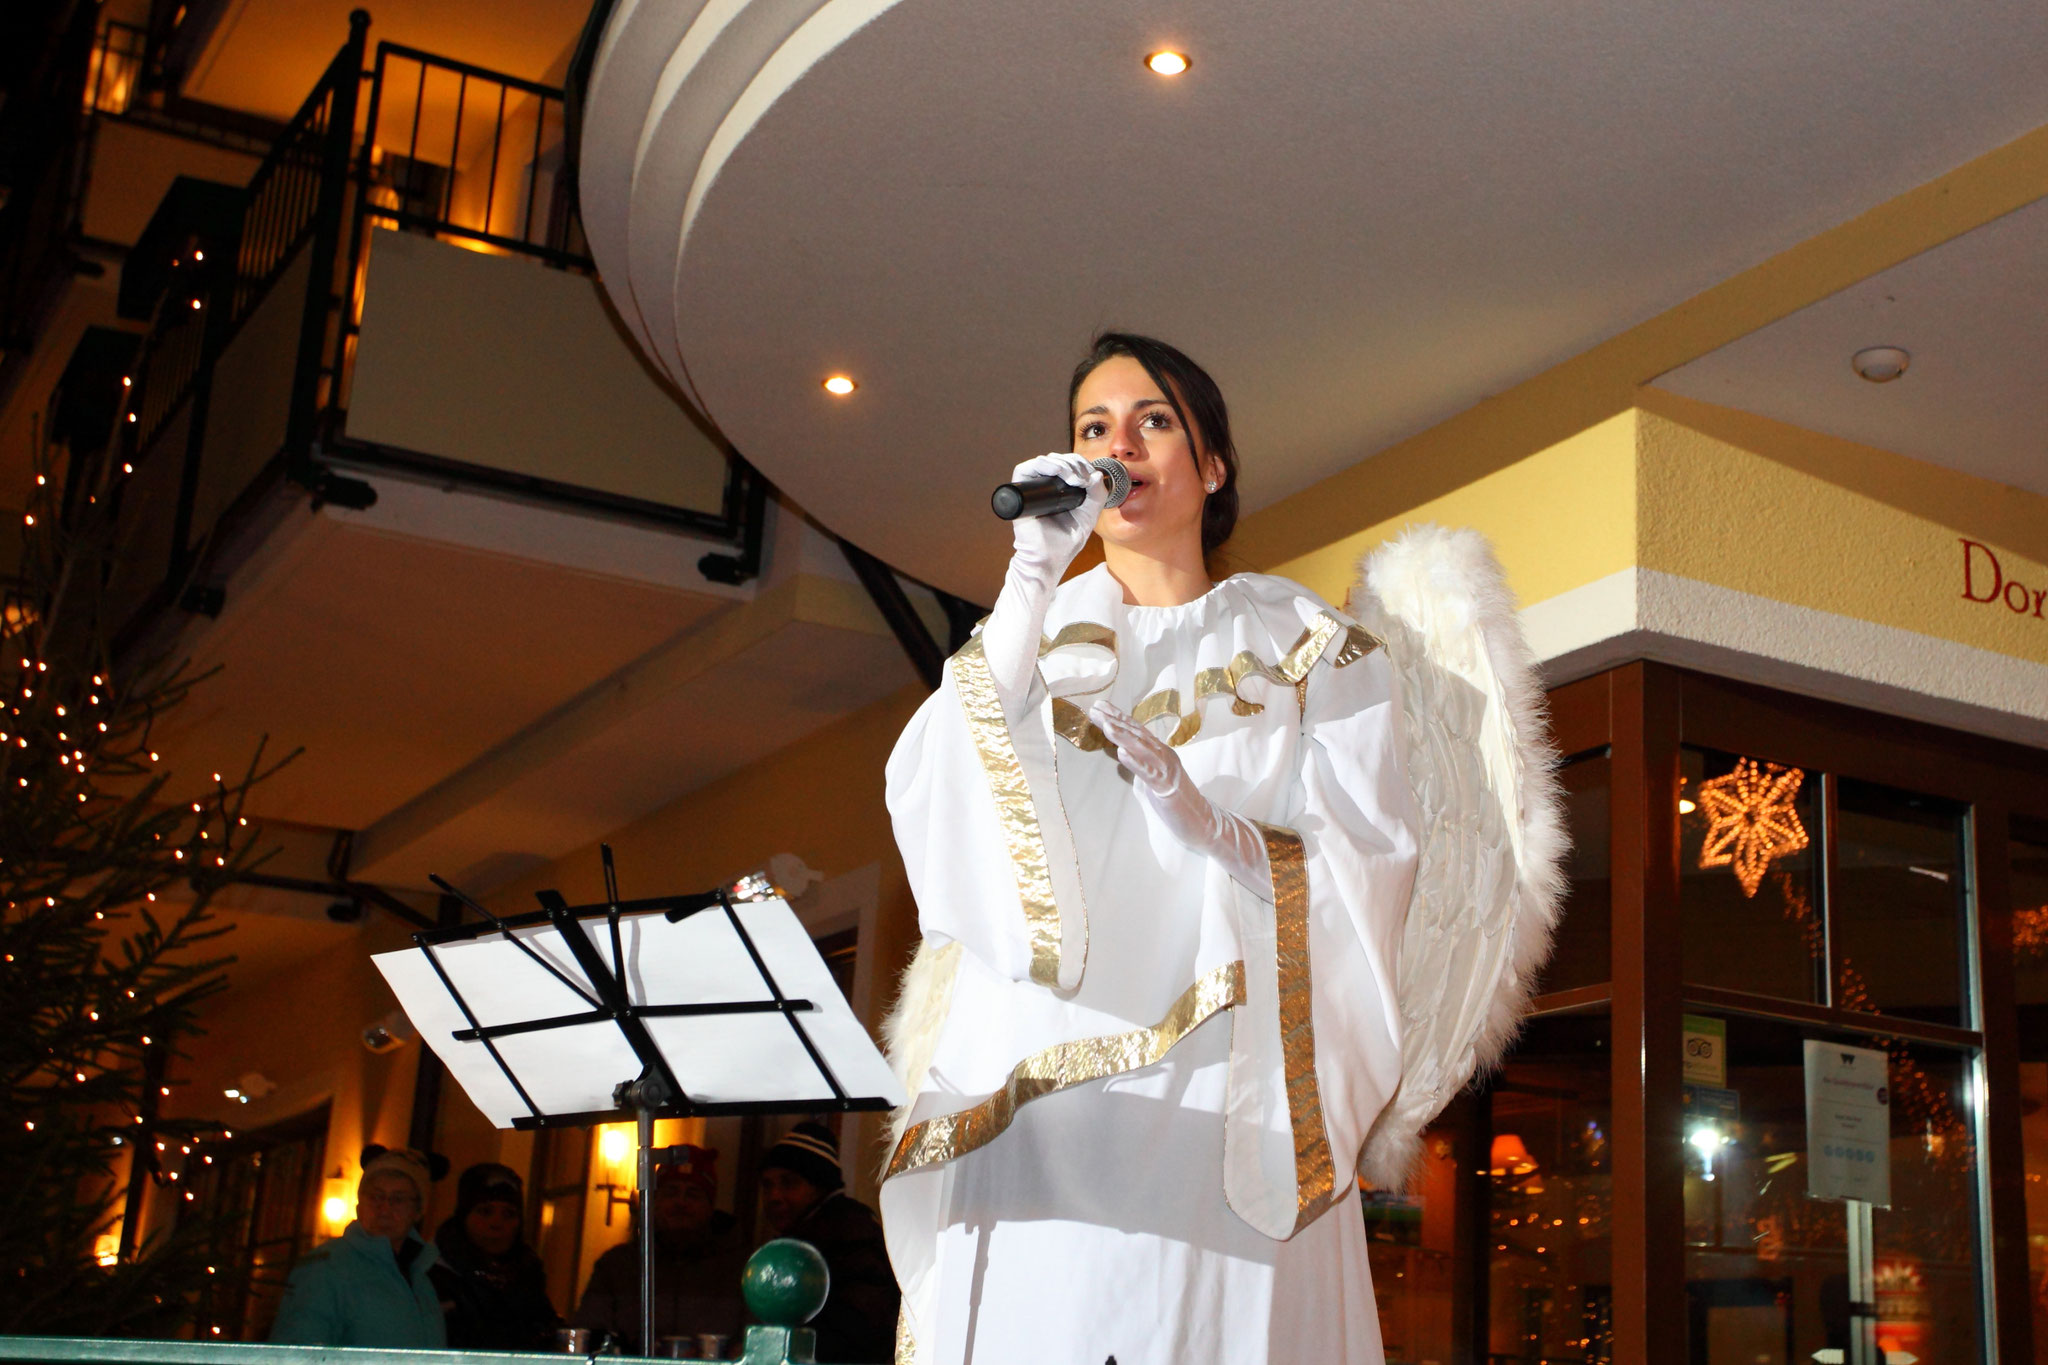 Angel is singing at the advent market in Grossarl